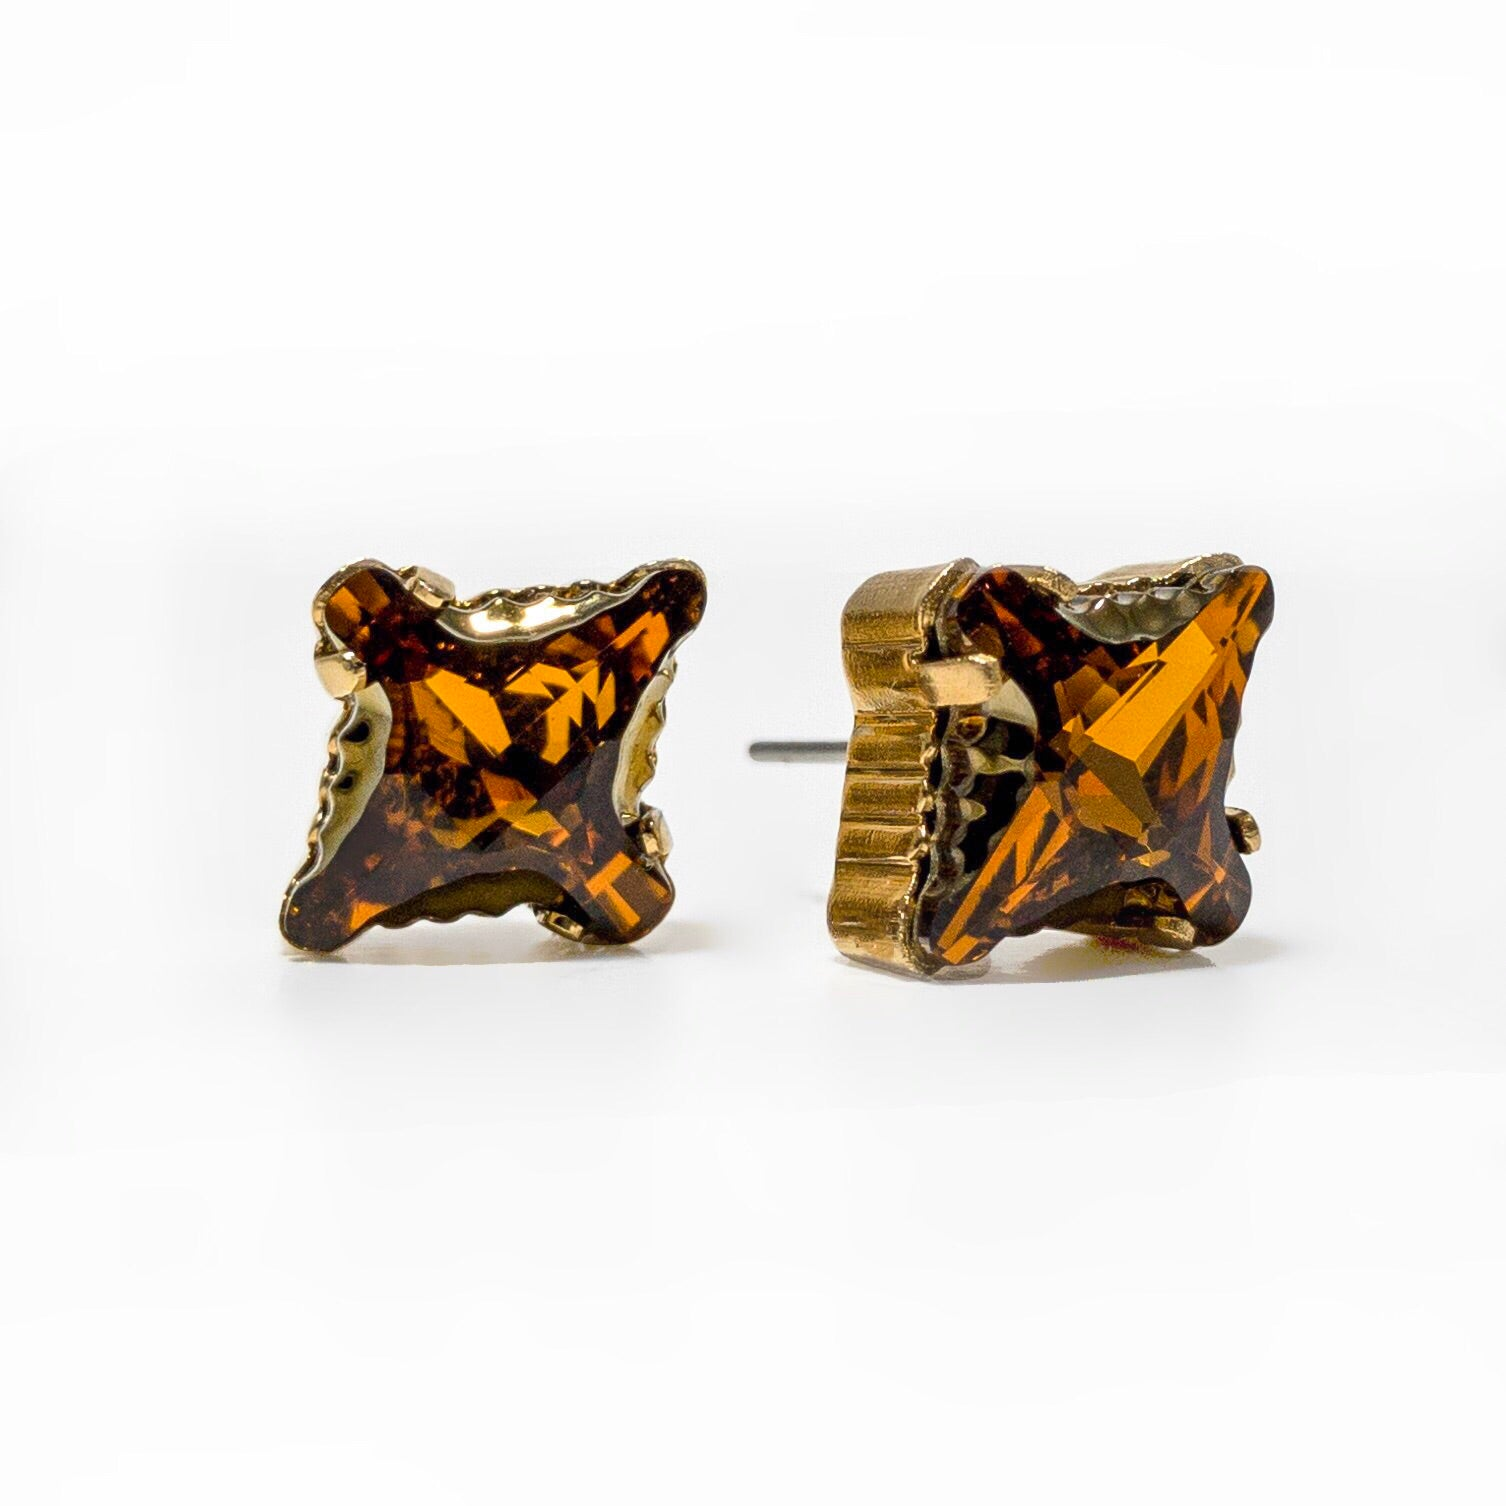 Multilayered cut, molded parts, and coated cavities create depth and texture in rhombus tribe crystal stud earrings.